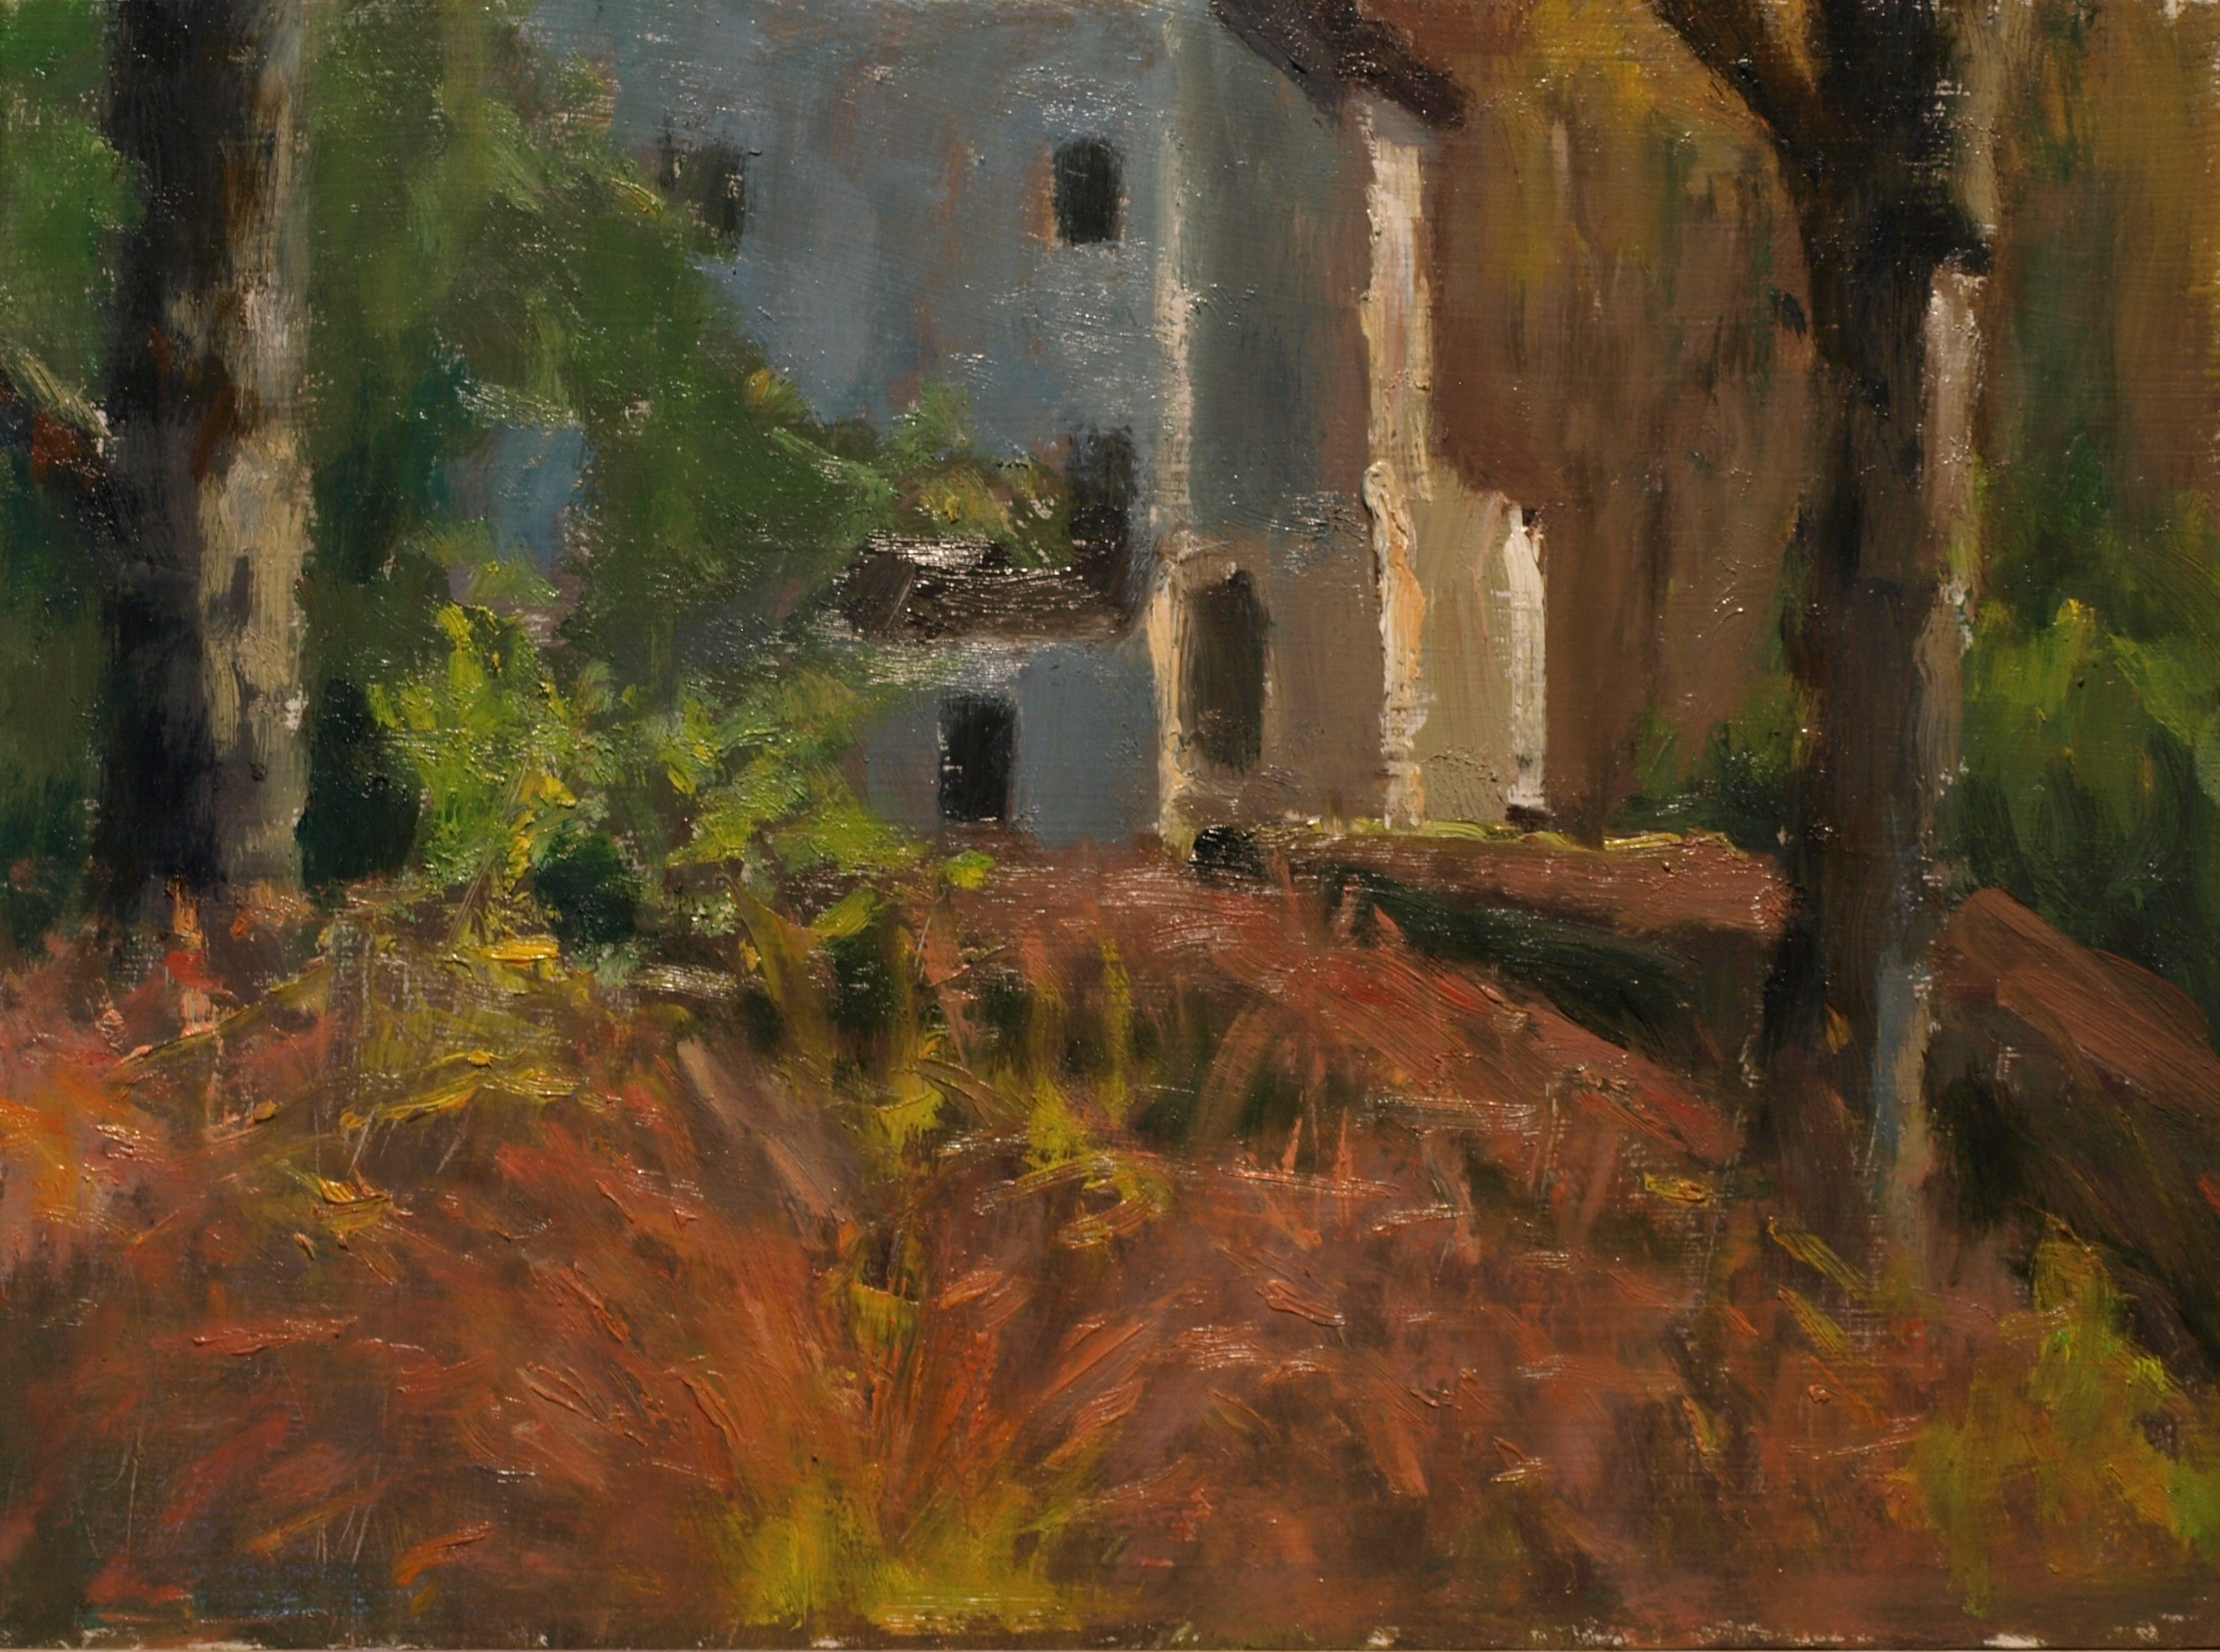 My House -- Autumn, Oil on Panel, 9 x 12 Inches, by Richard Stalter, $220